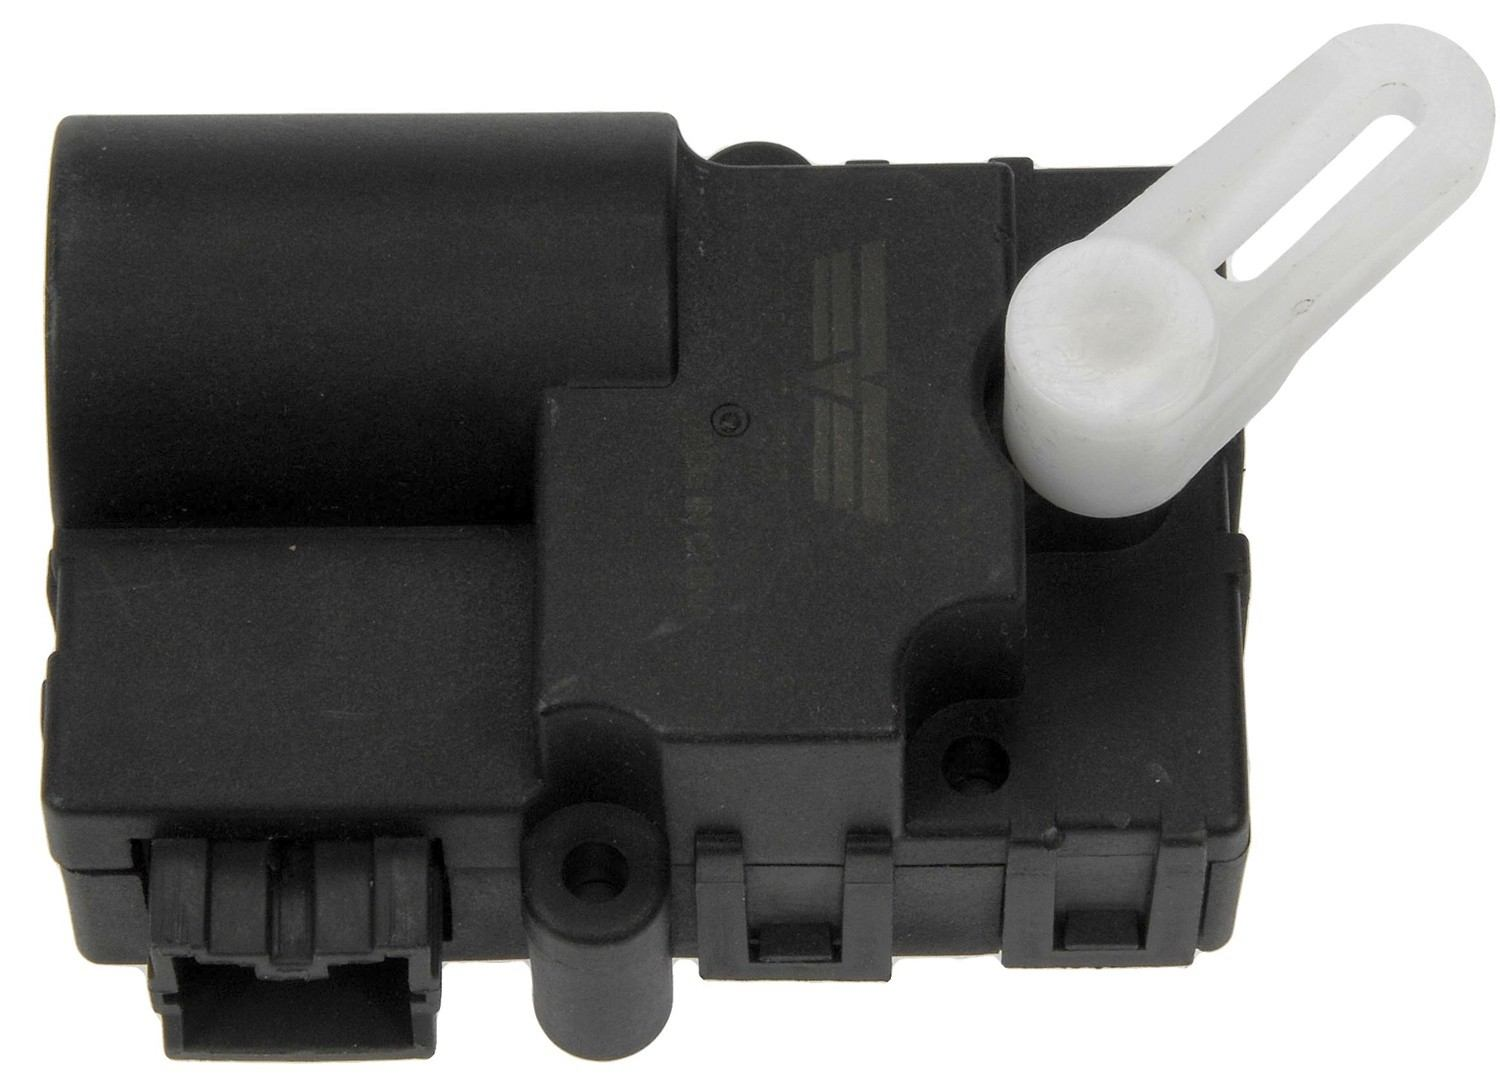 DORMAN OE SOLUTIONS - HVAC Heater Blend Door Actuator - DRE 604-600